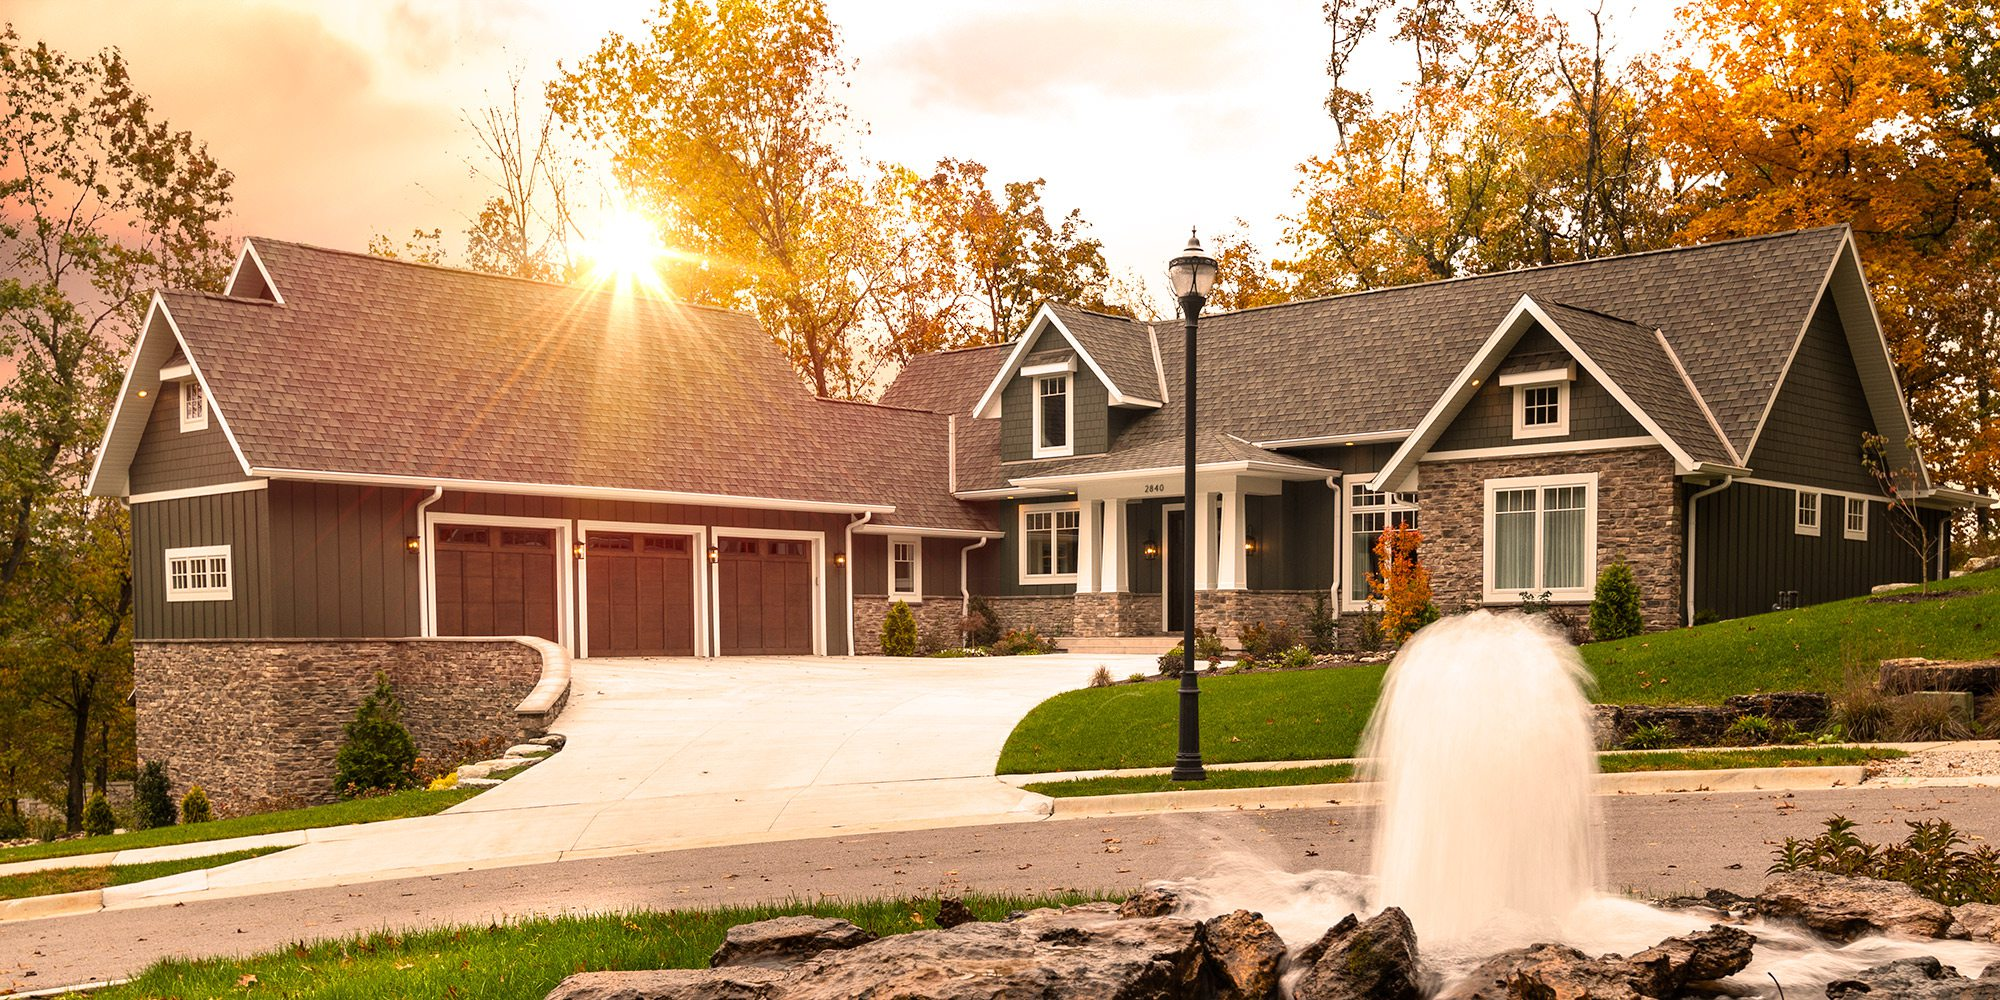 Exterior of modern craftsman style home in southwest Missouri